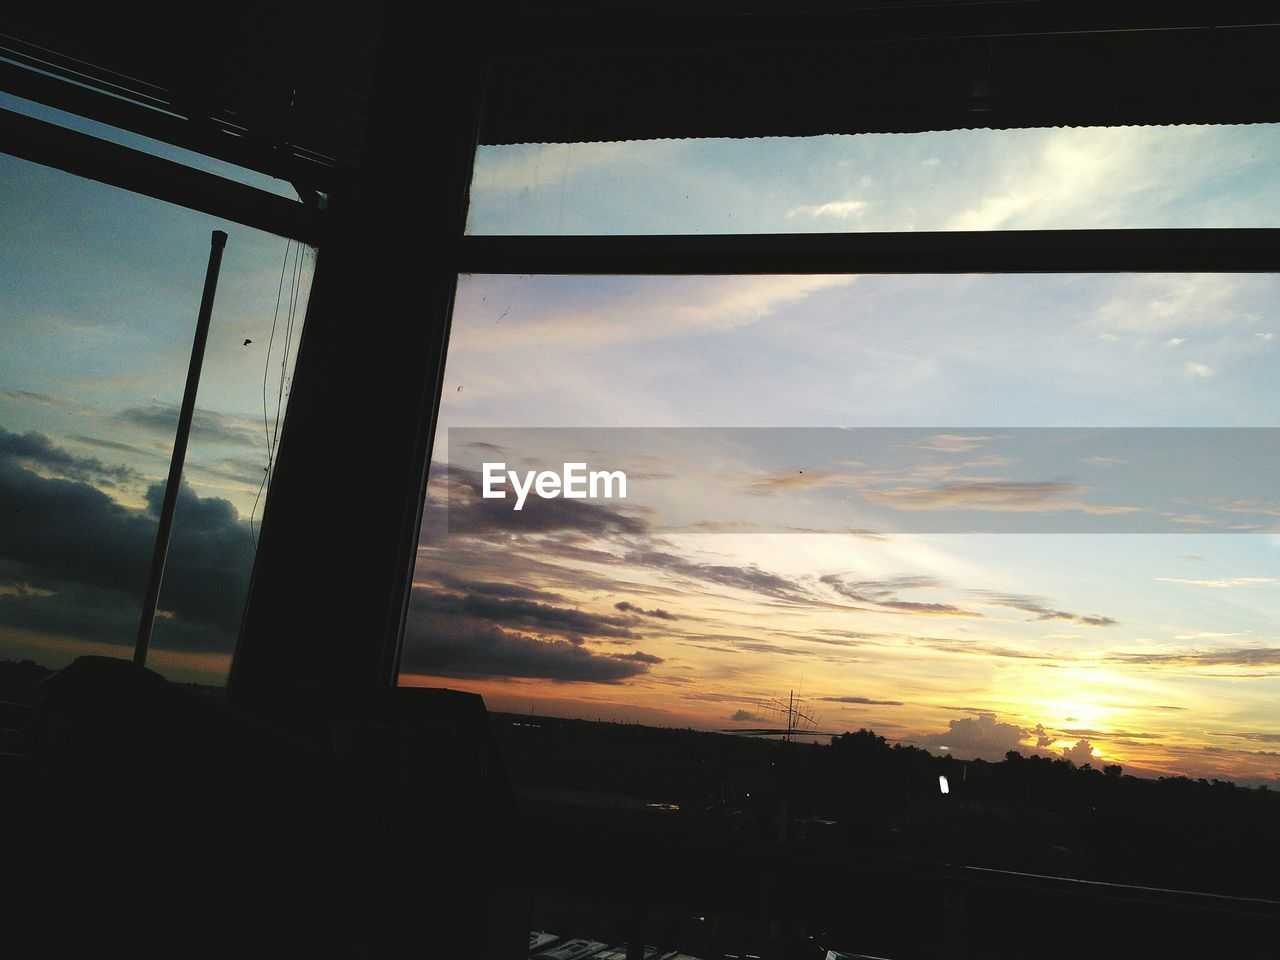 sky, sunset, cloud - sky, window, no people, silhouette, nature, built structure, indoors, scenics, architecture, beauty in nature, city, day, close-up